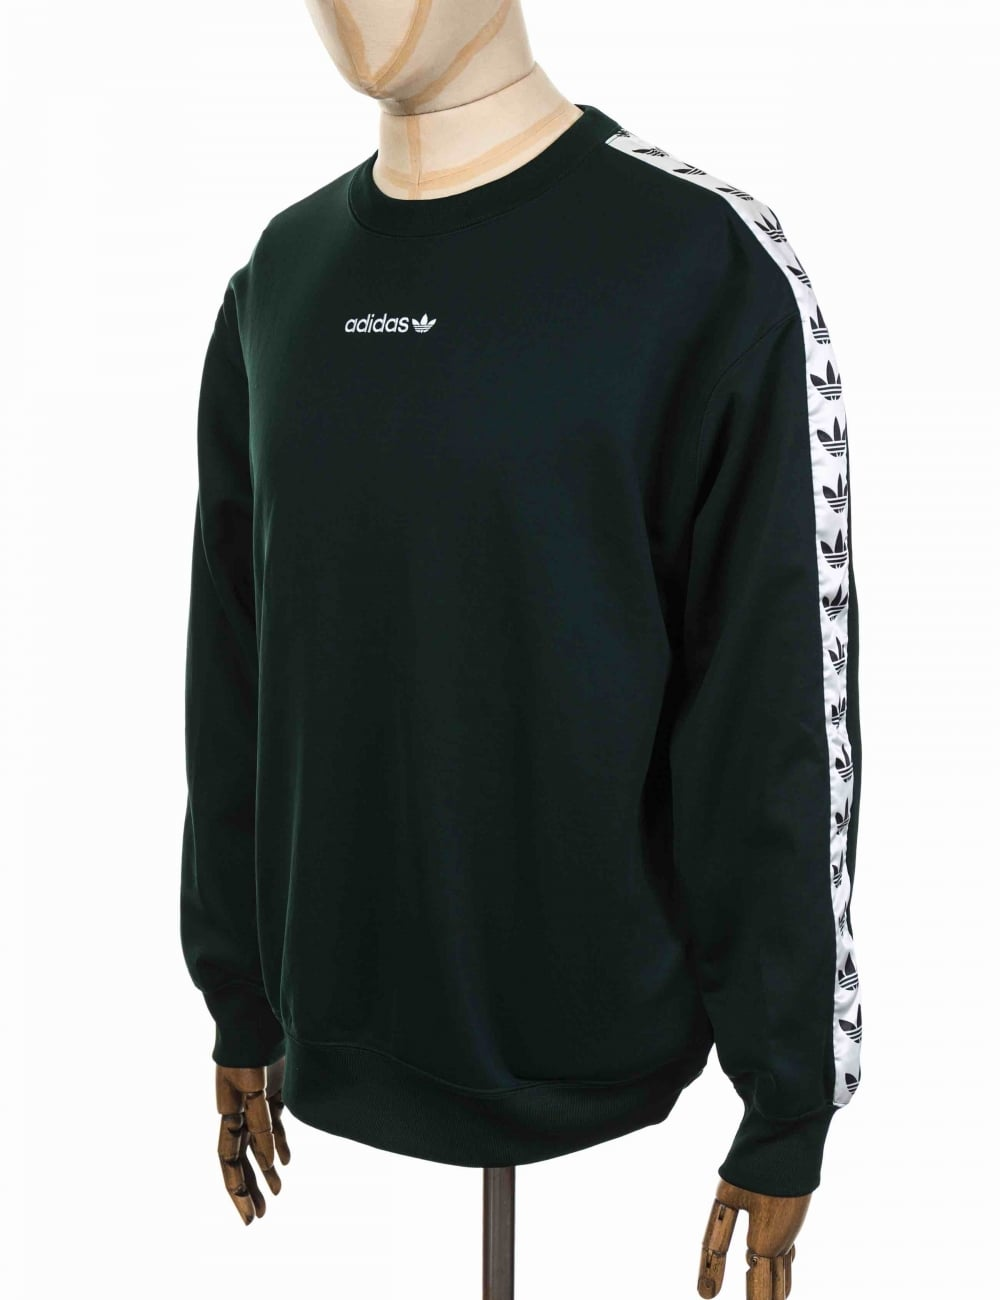 TNT Tape Crew Sweatshirt - Night Green/White